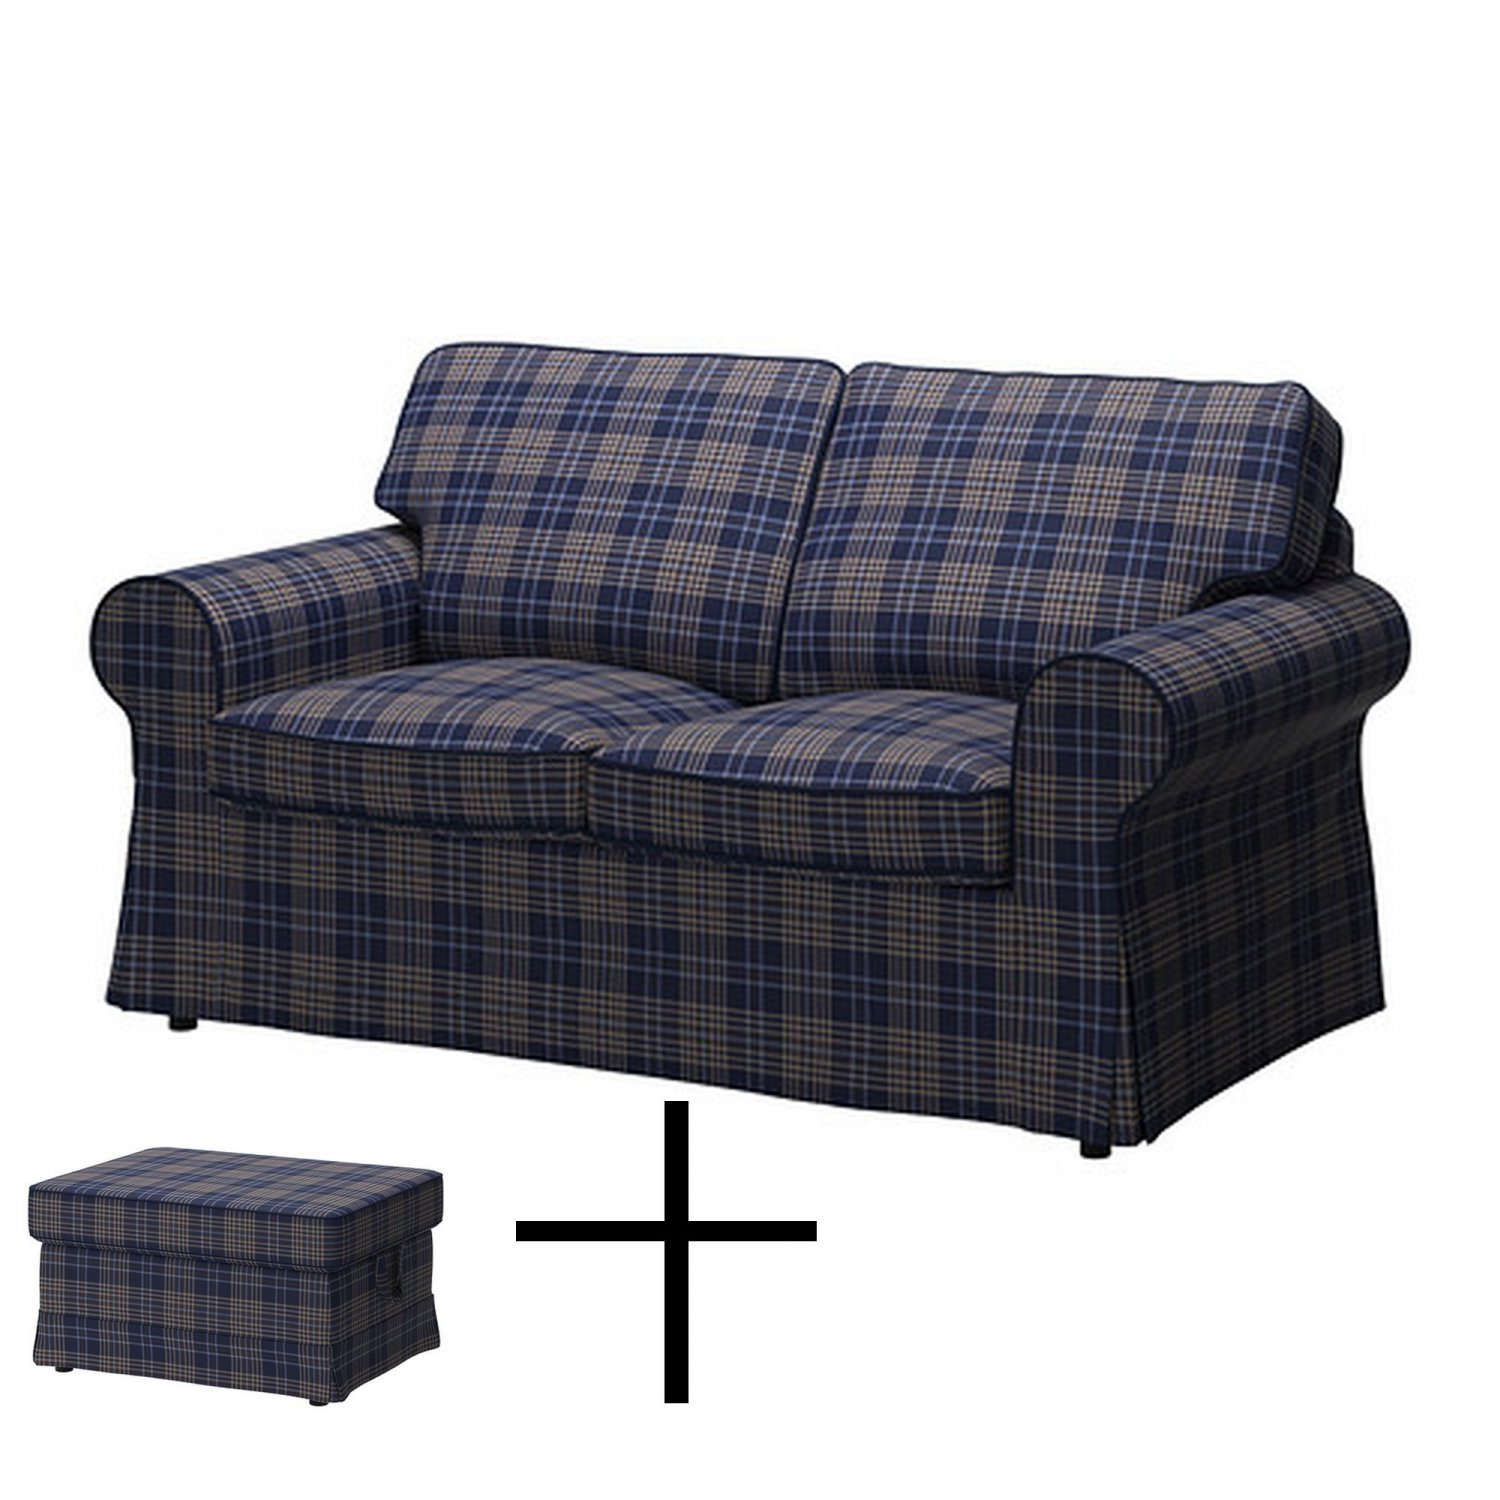 Ikea Ektorp 2 Seat Loveseat Sofa And Footstool Cover Slipcover Rutna Multi Plaid Blue